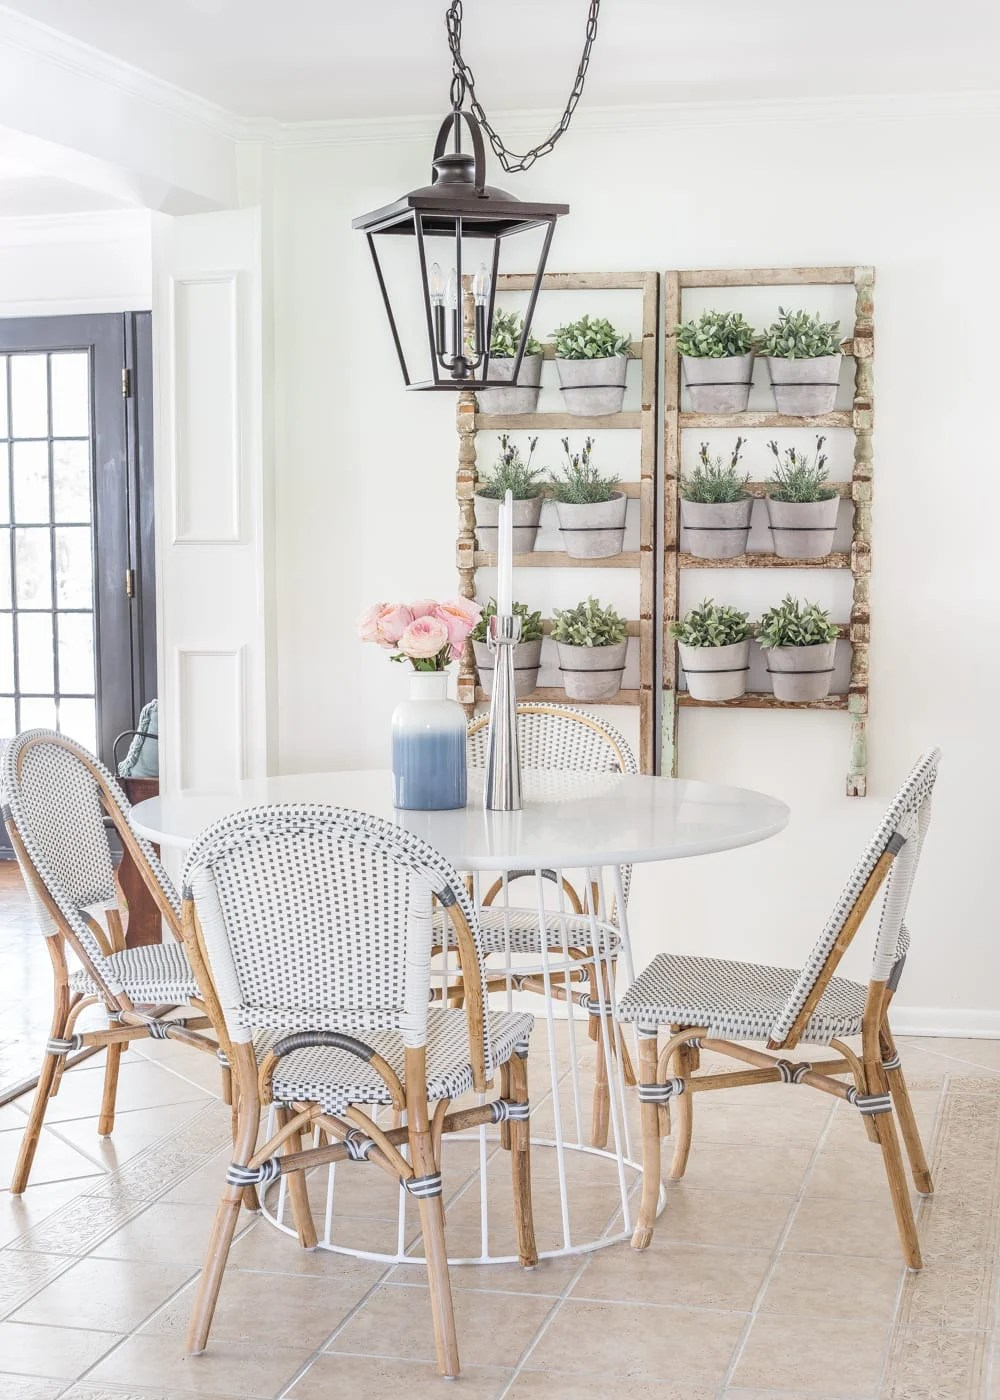 Simple Spring Home Tour | Breakfast nook informal dining with French bistro chairs and wall planter made from antique banisters